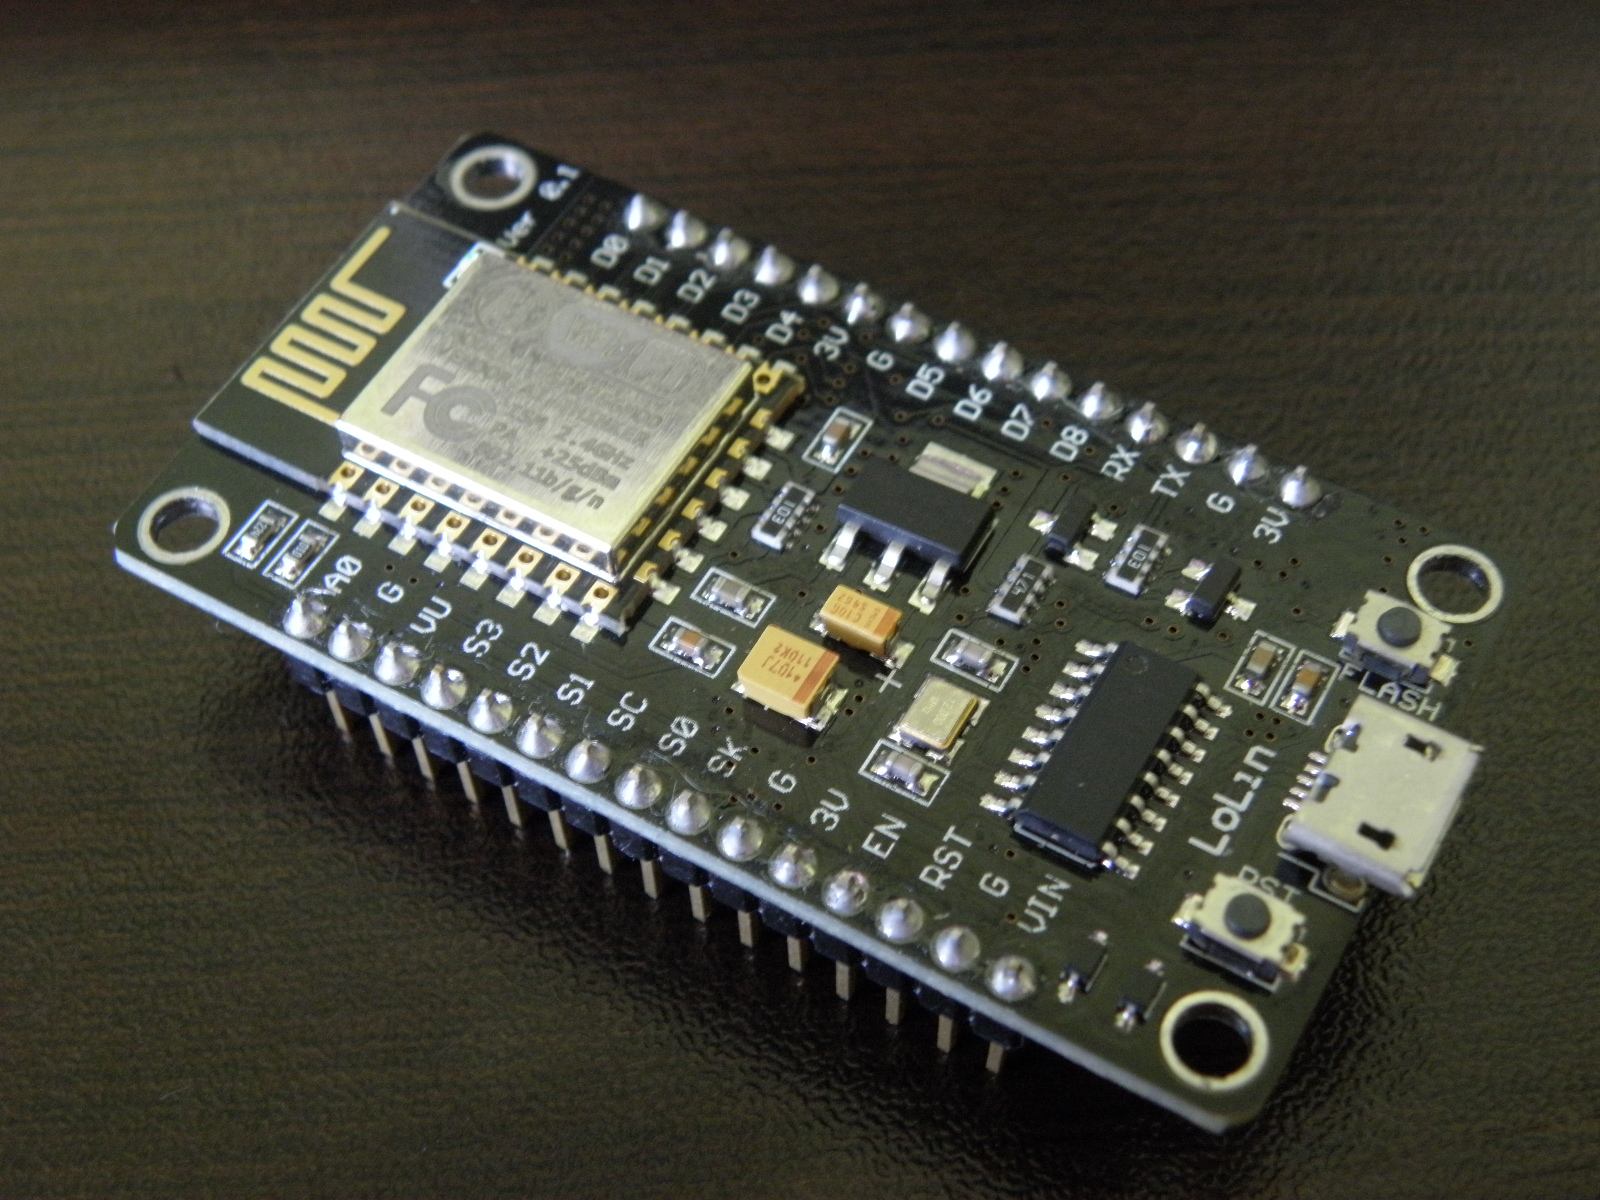 Let's Run Lisp on a Microcontroller [Dmitry Frank]